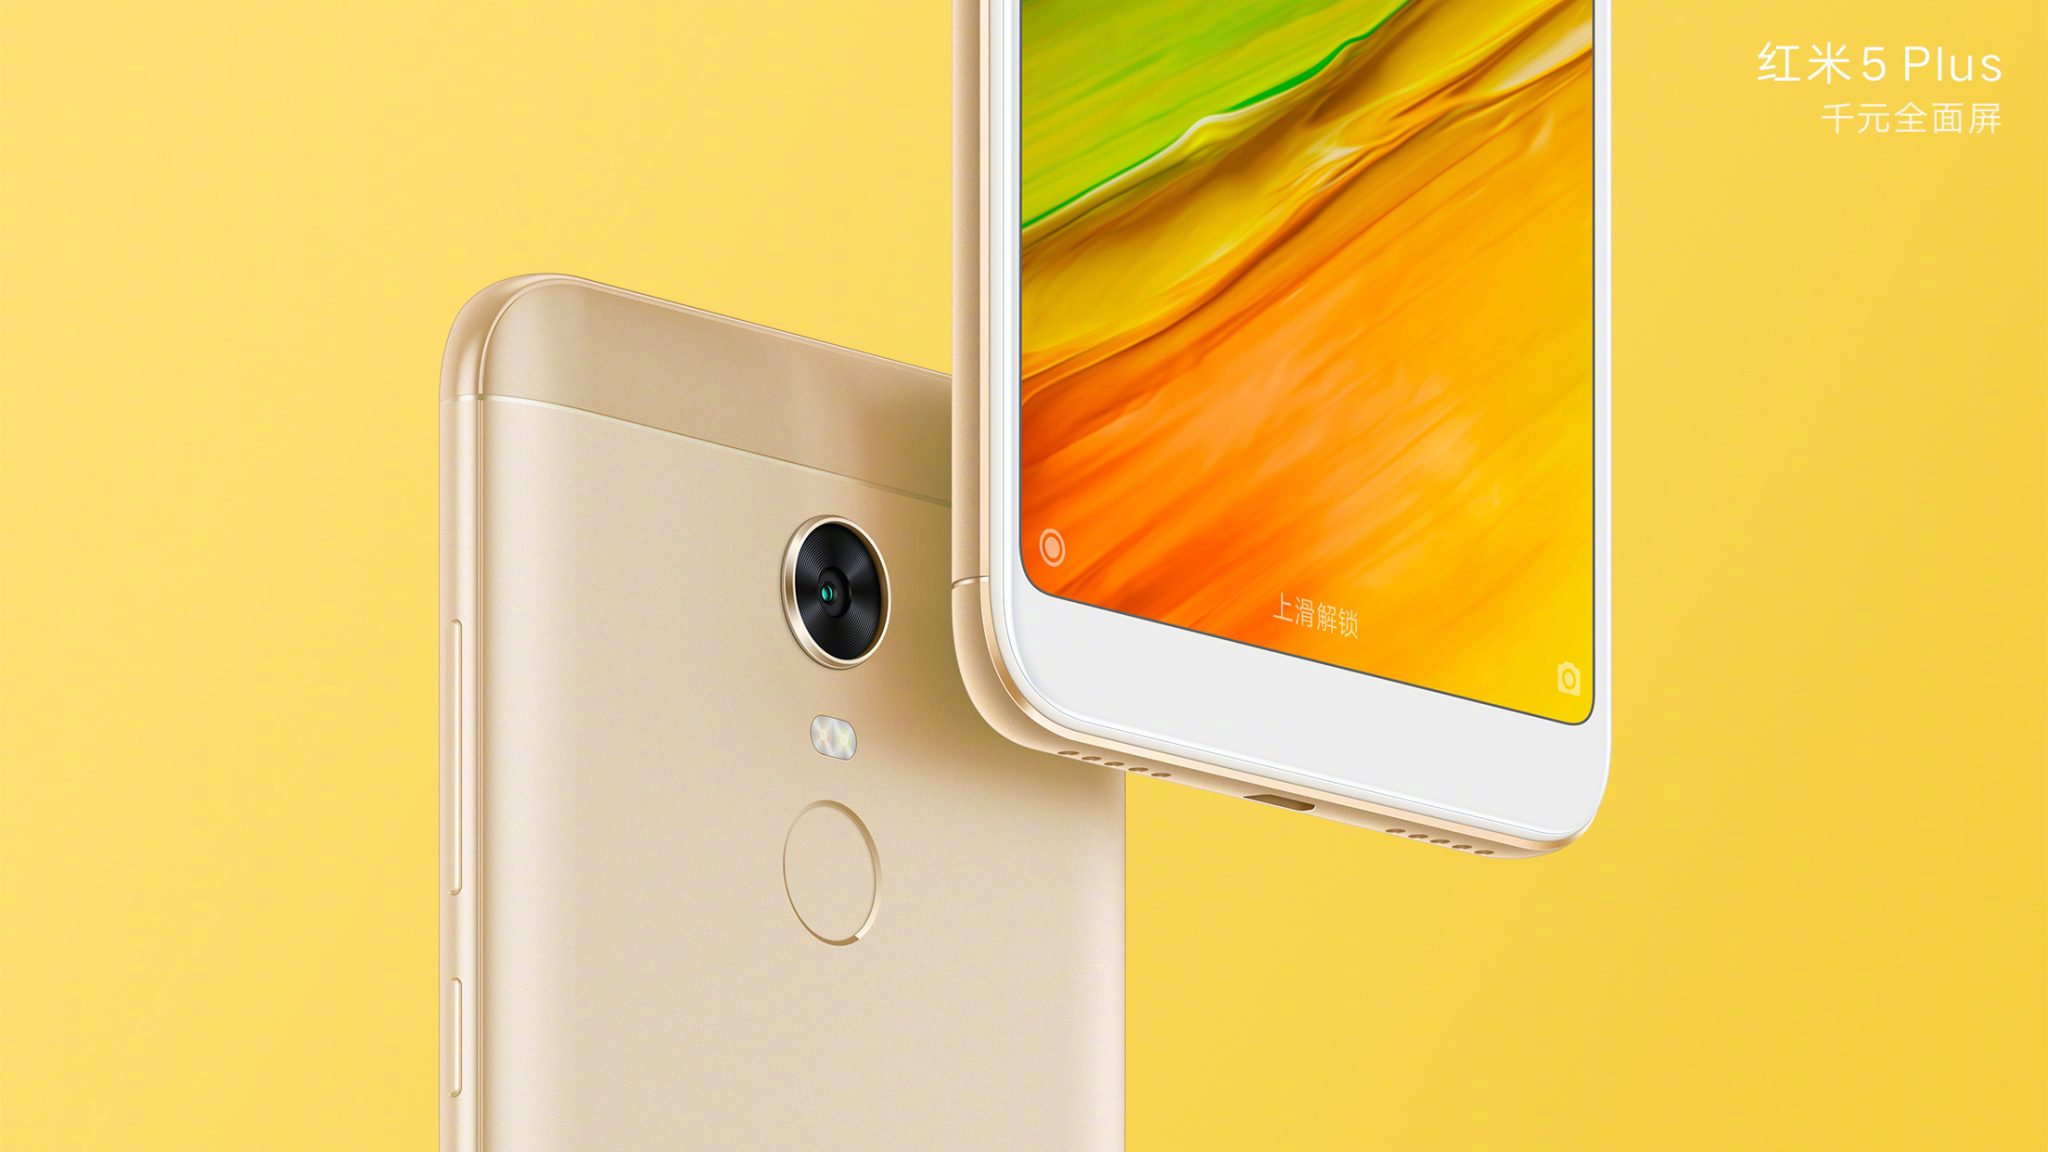 Xiaomi Redmi 5 & Redmi 5 Plus - Check out the official renders 1